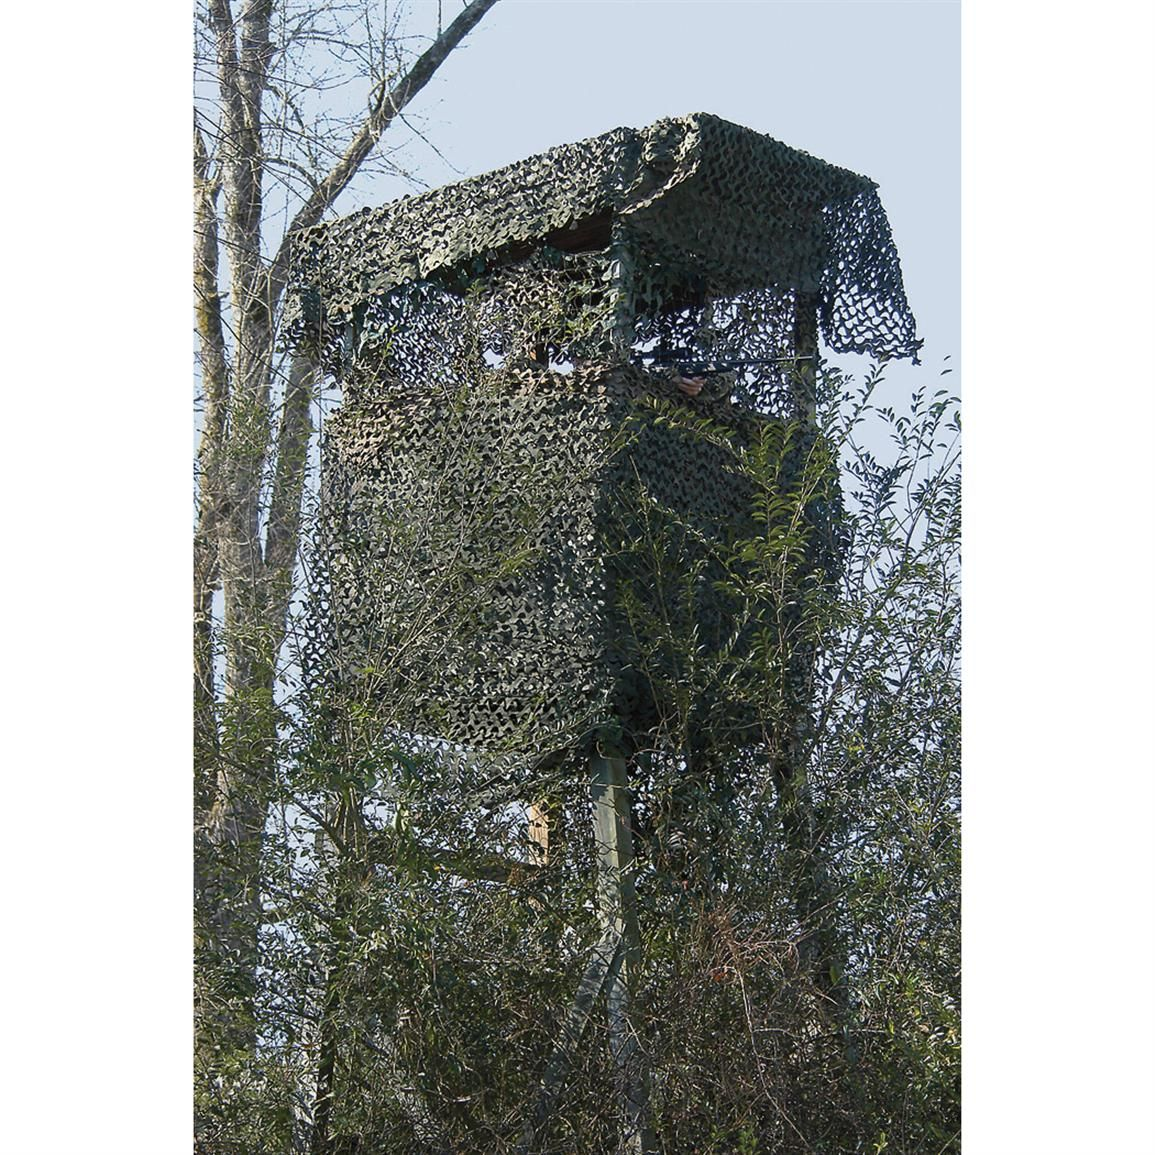 Camosystems Blind Netting Tree Stand Accessories Ground